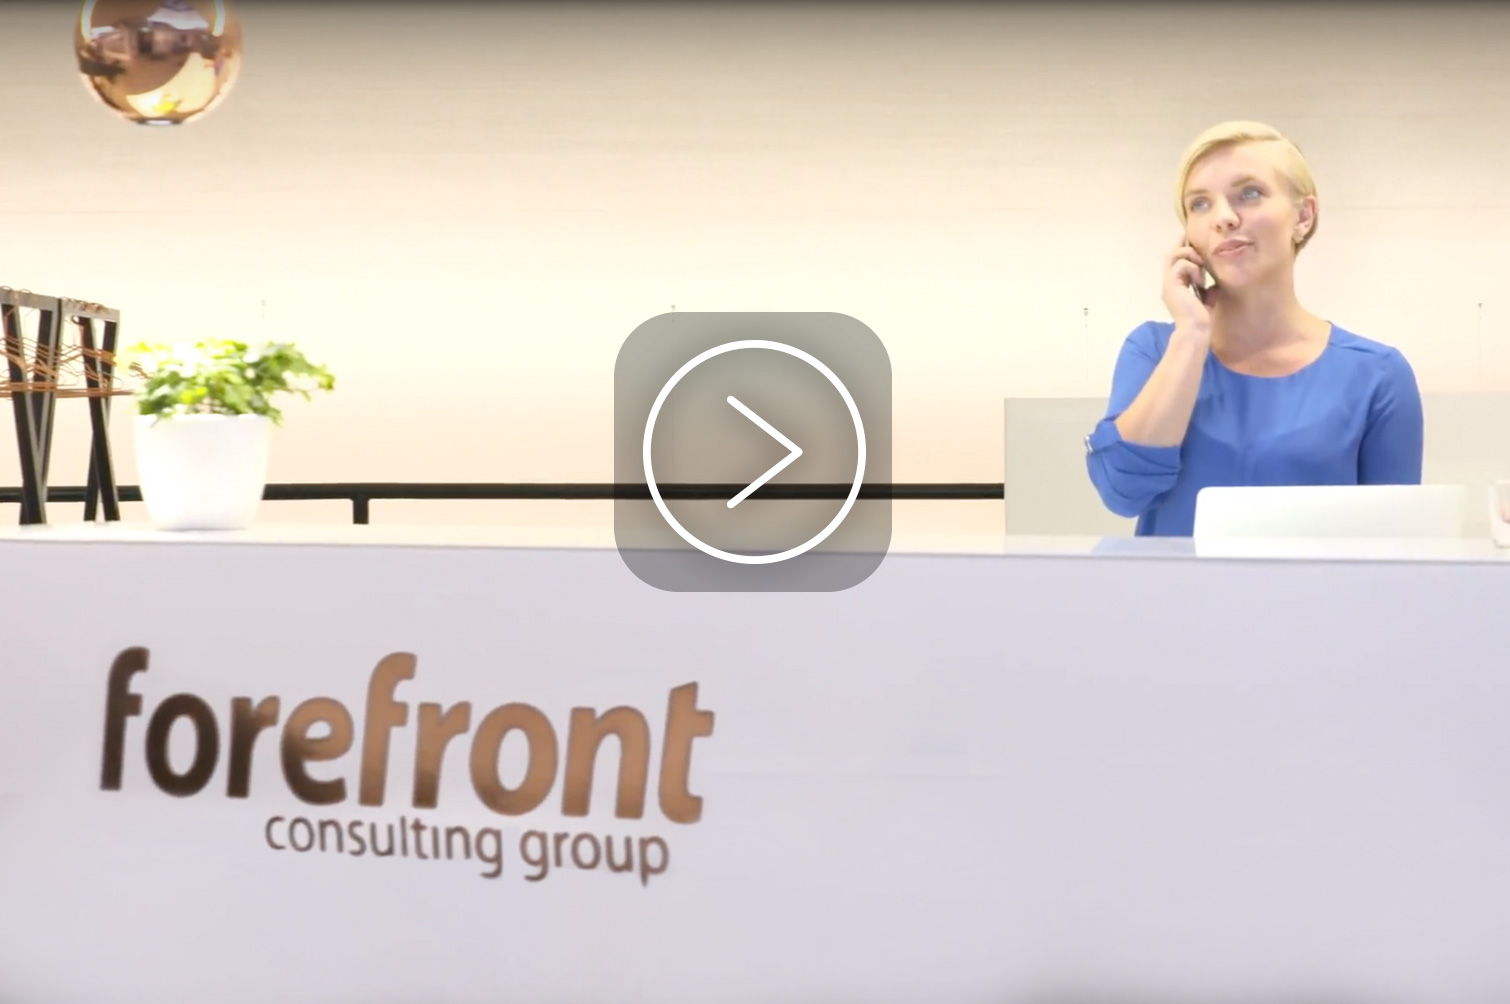 Forefront – This is Forefront